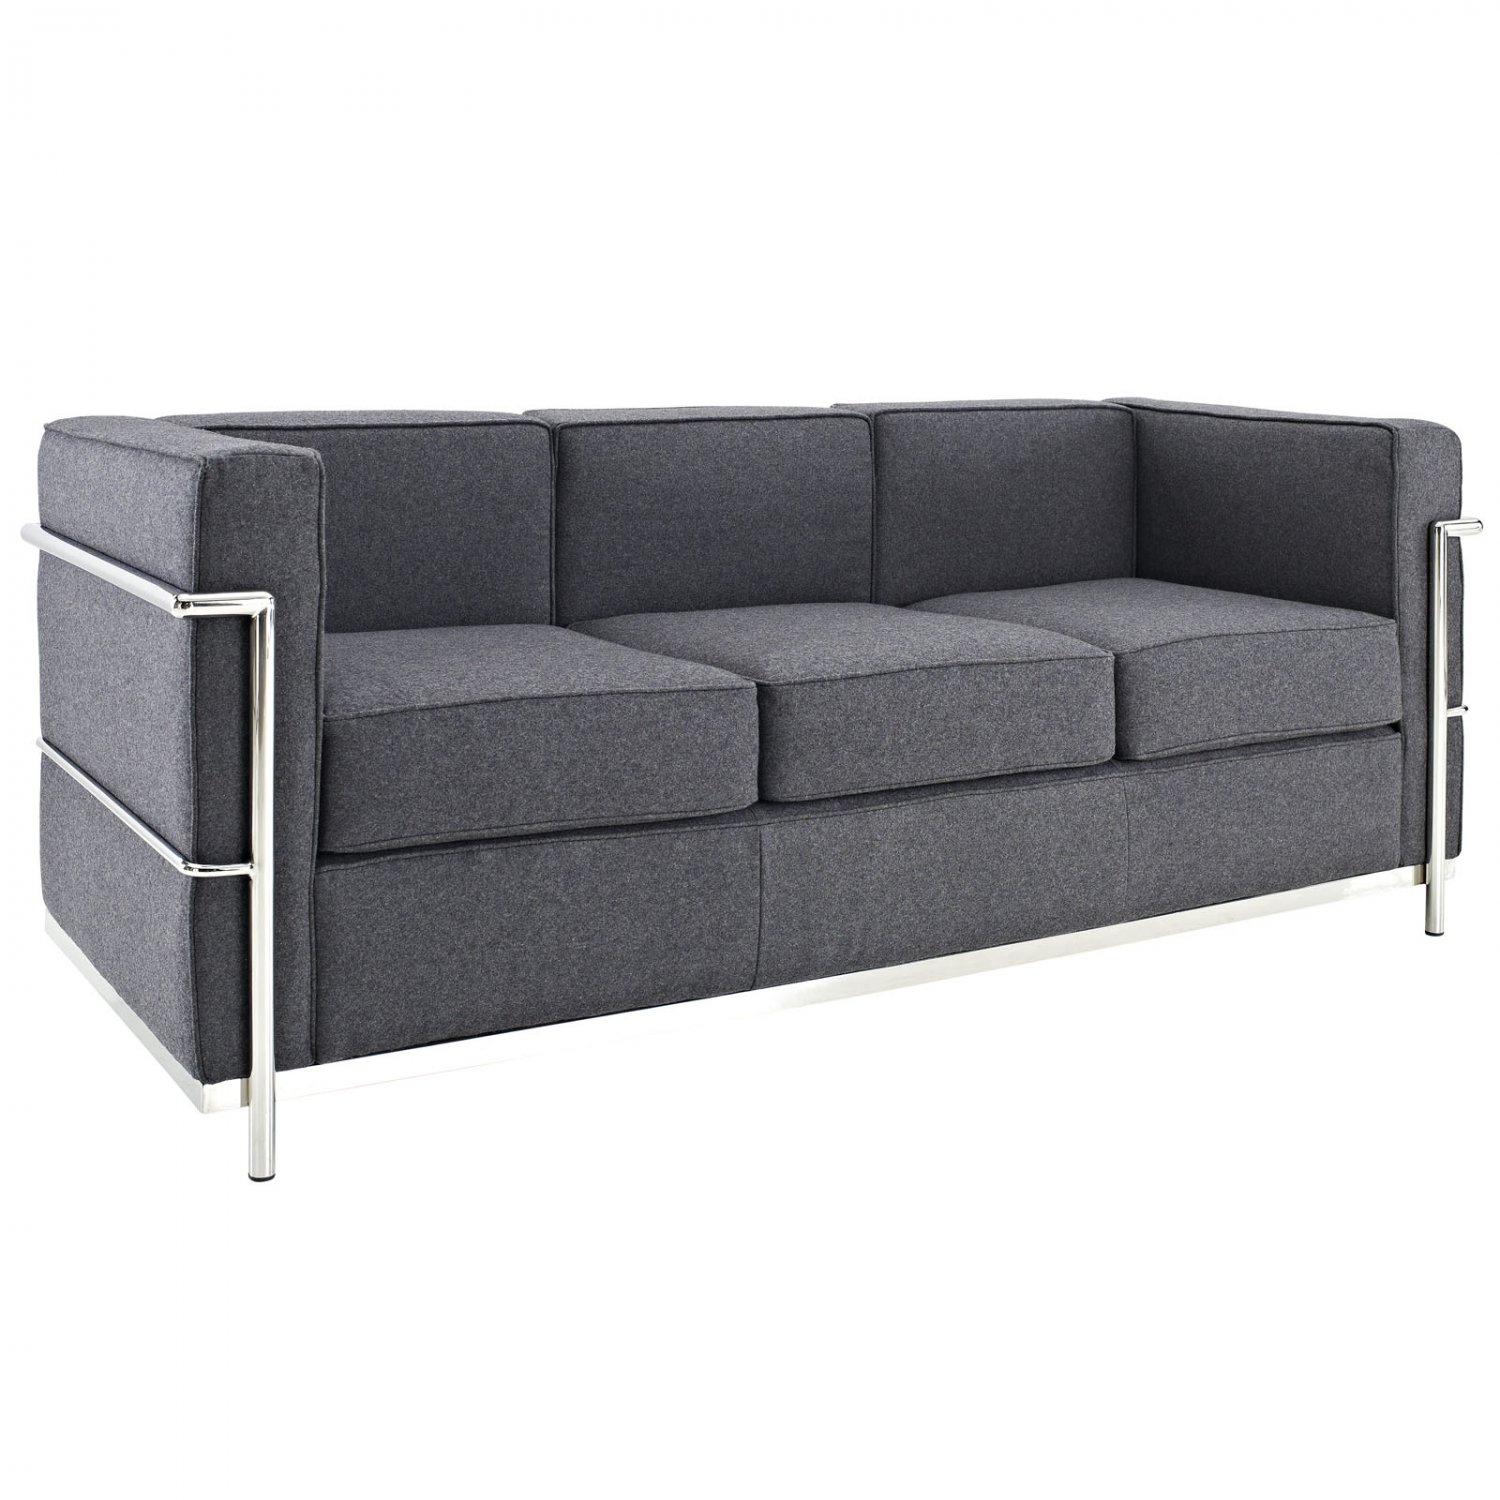 Corbusier lounge dimensions crafts Le corbusier lc2 sofa